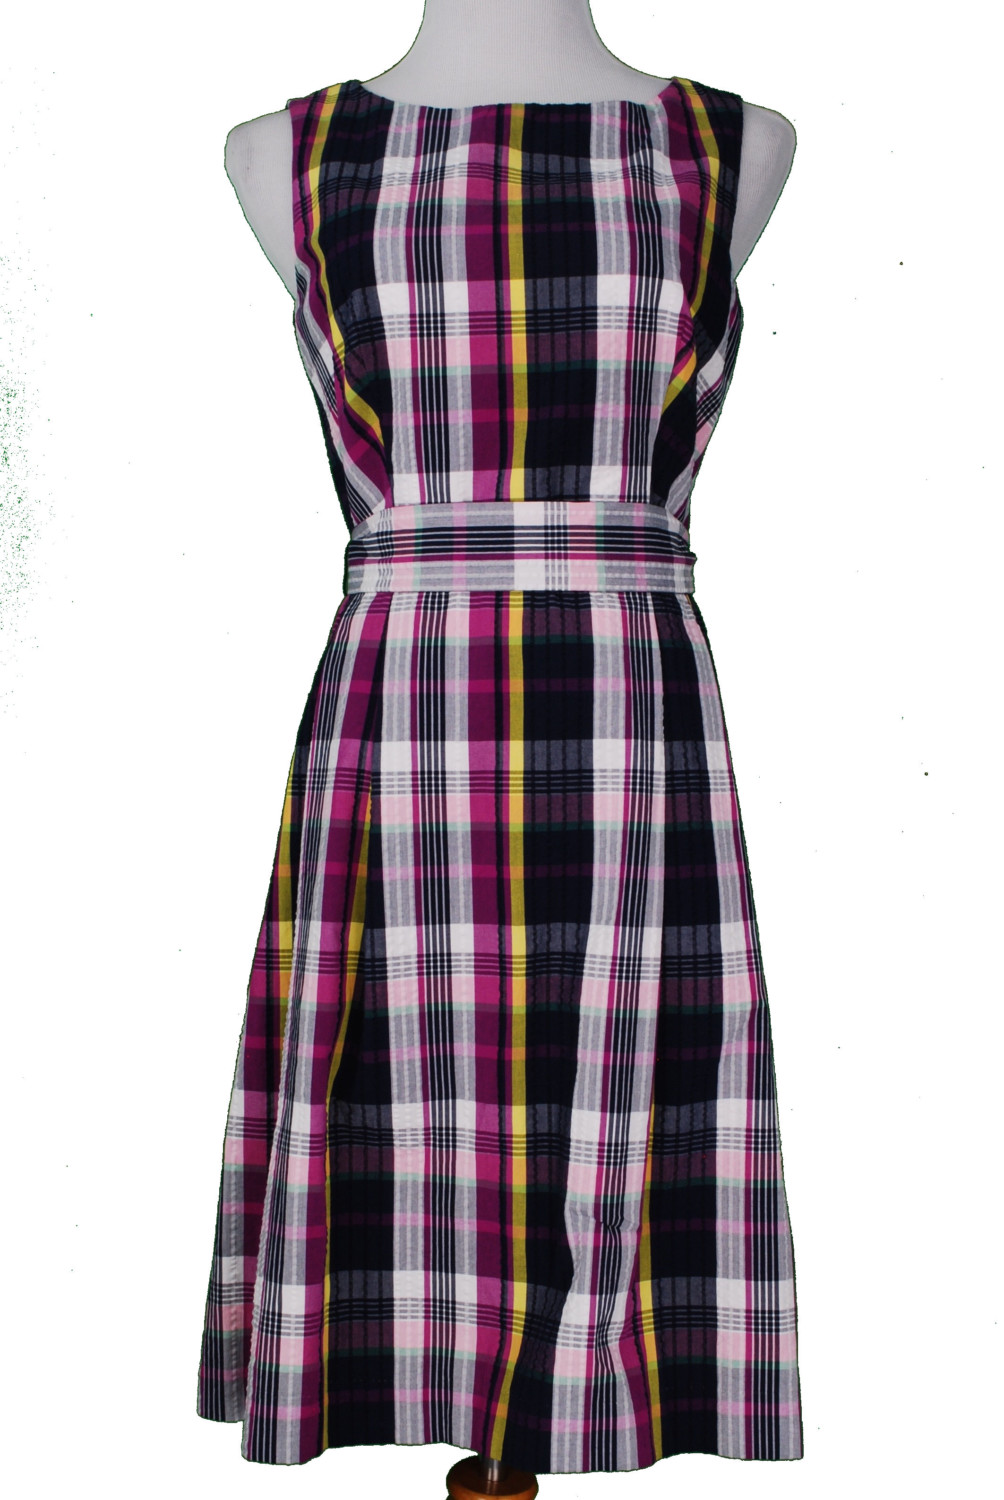 Anne Klein Dress – Original Retail: $179, CWS: $28